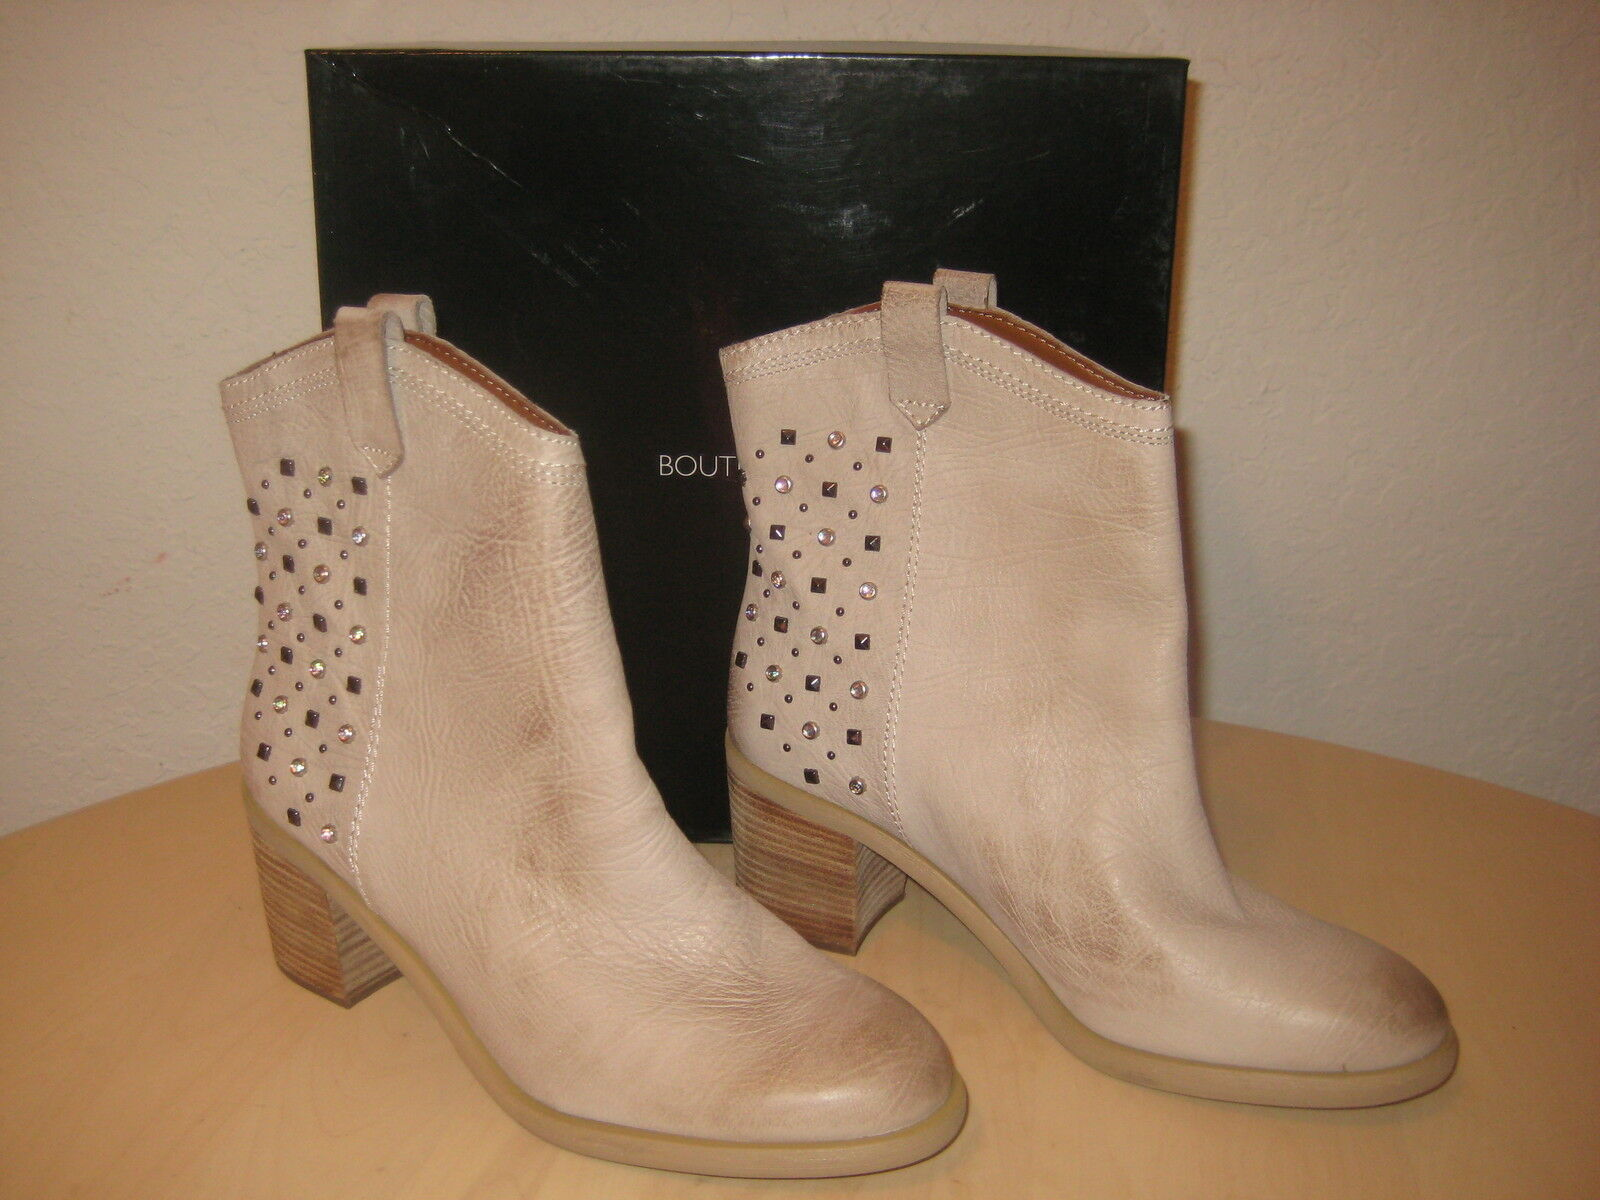 Boutique 9 schuhe 7.5 M damen New Conspire Light Taupe Leather Mid Calf Stiefel